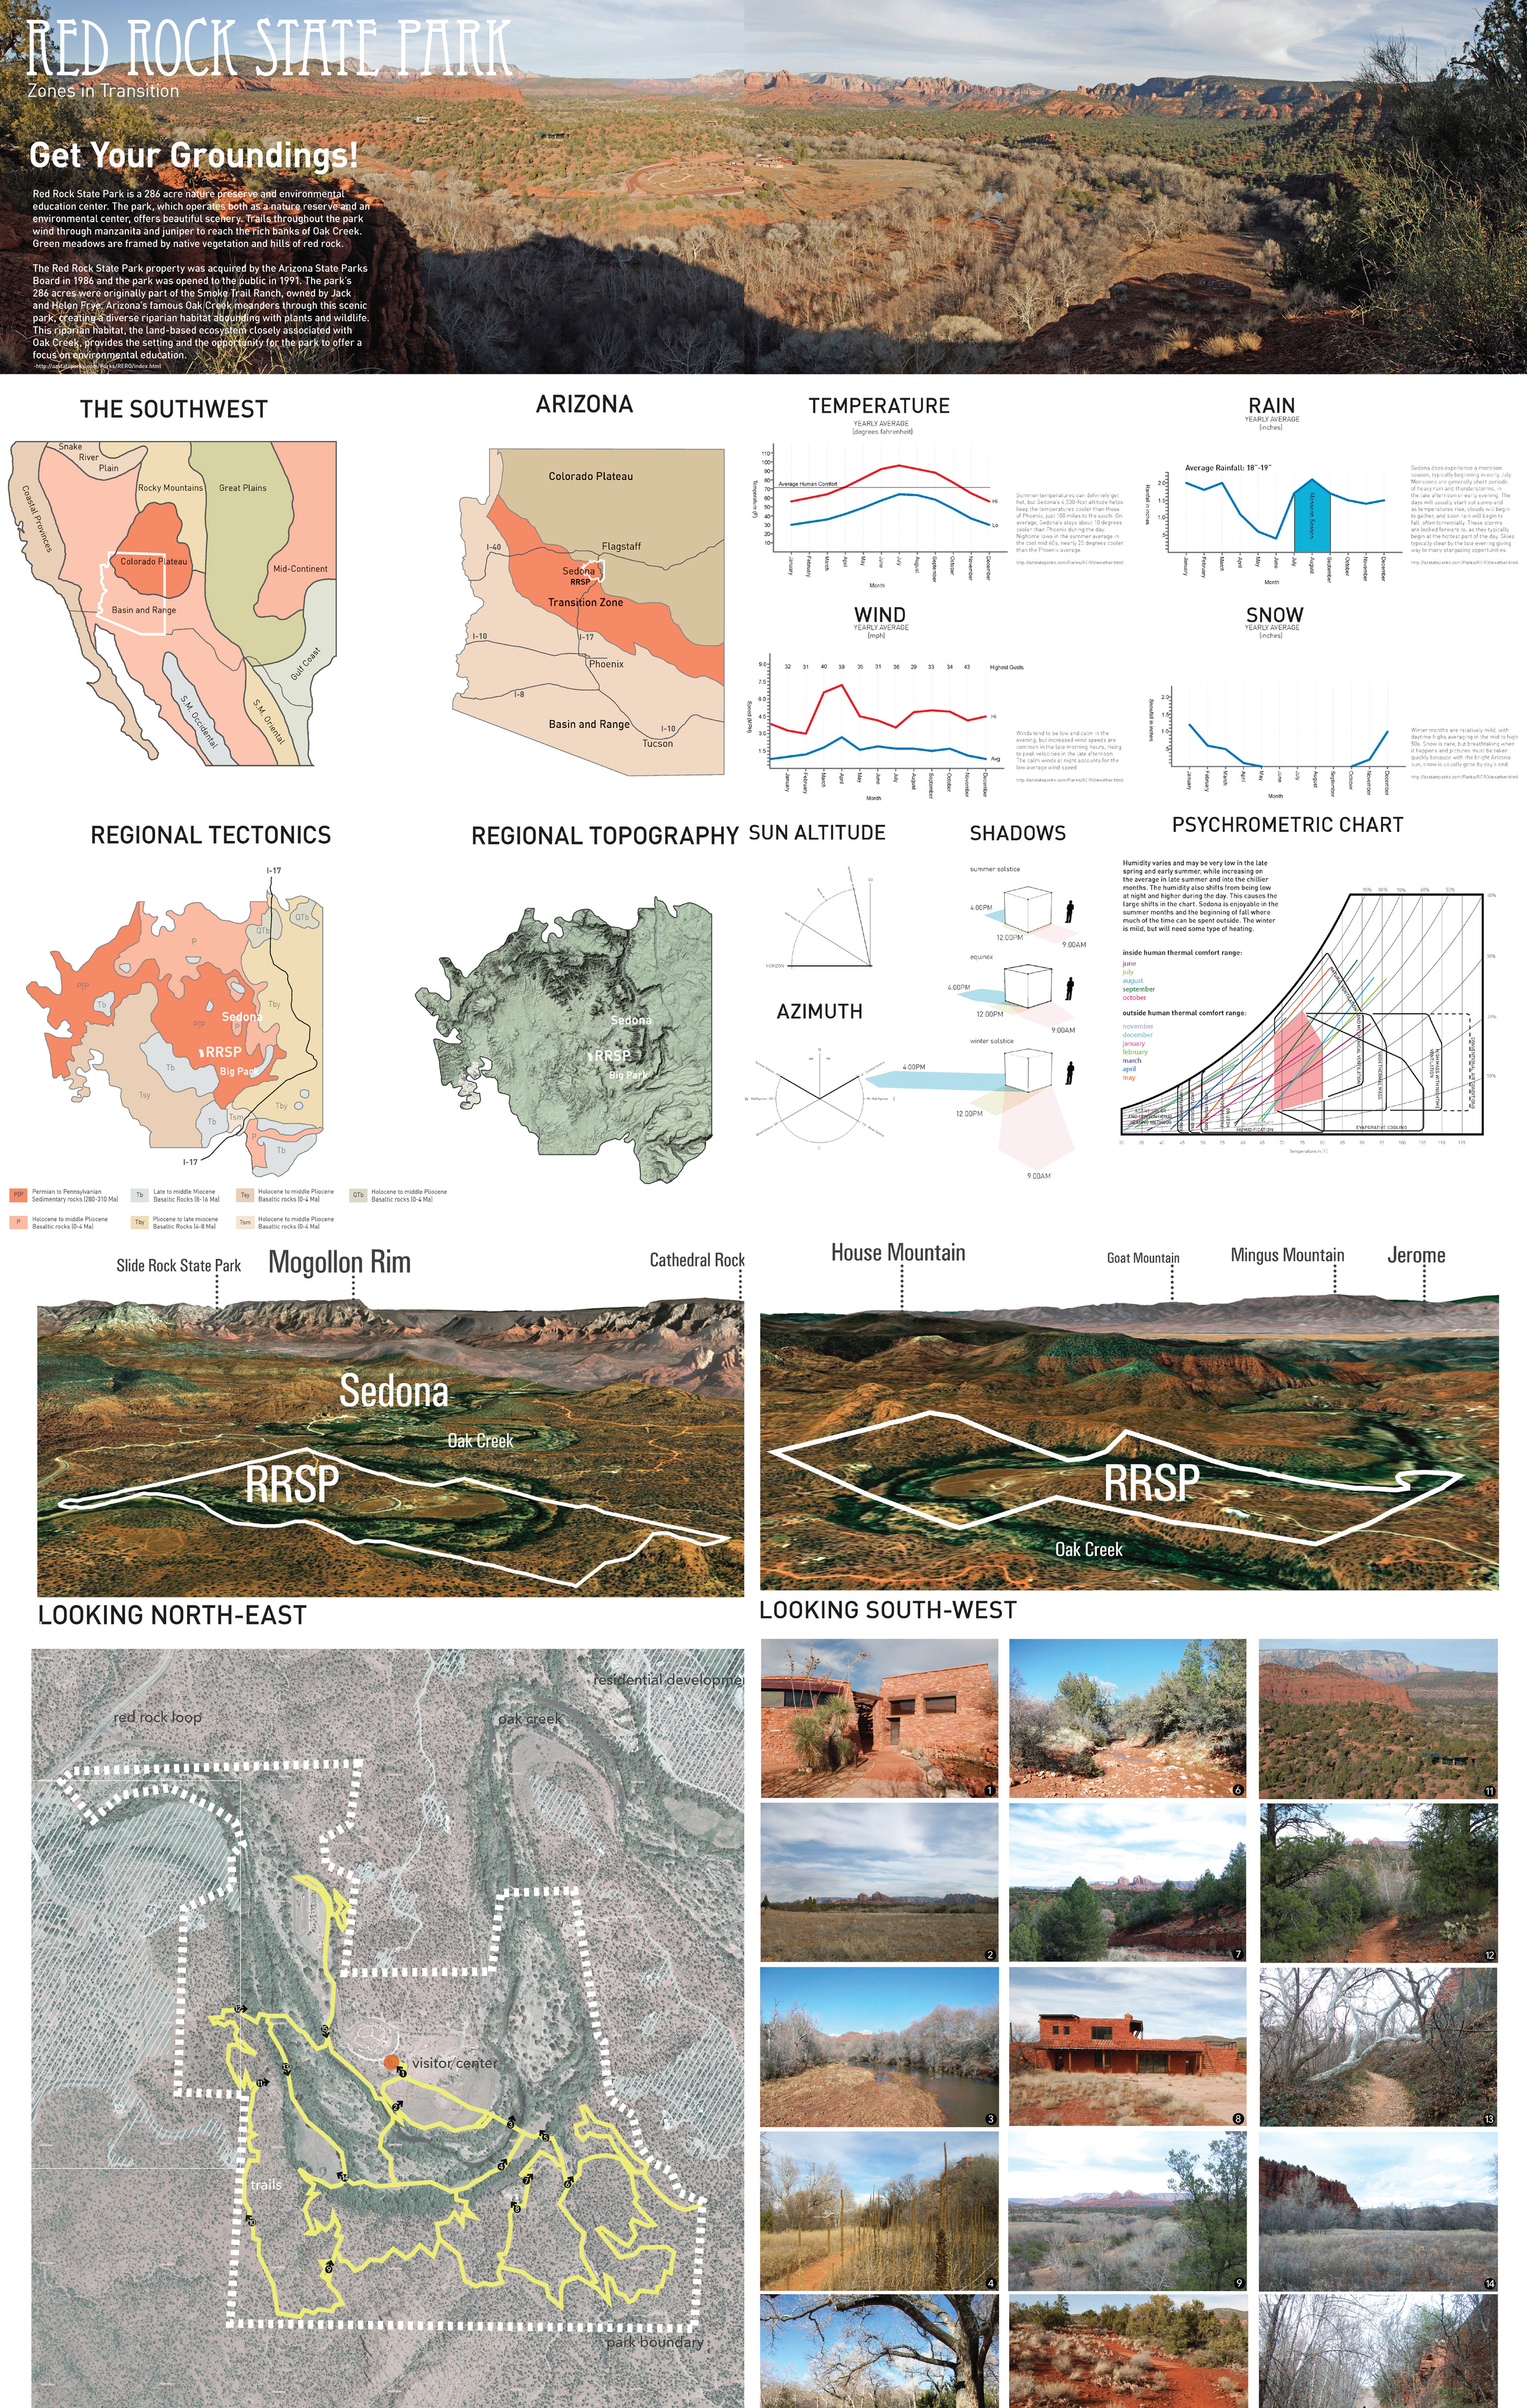 Students study in teams a site with a foundation method for analyzing a landscape. Geomorphology and climate create soils, and flora and fauna live within that matrix. (click image to enlarge)